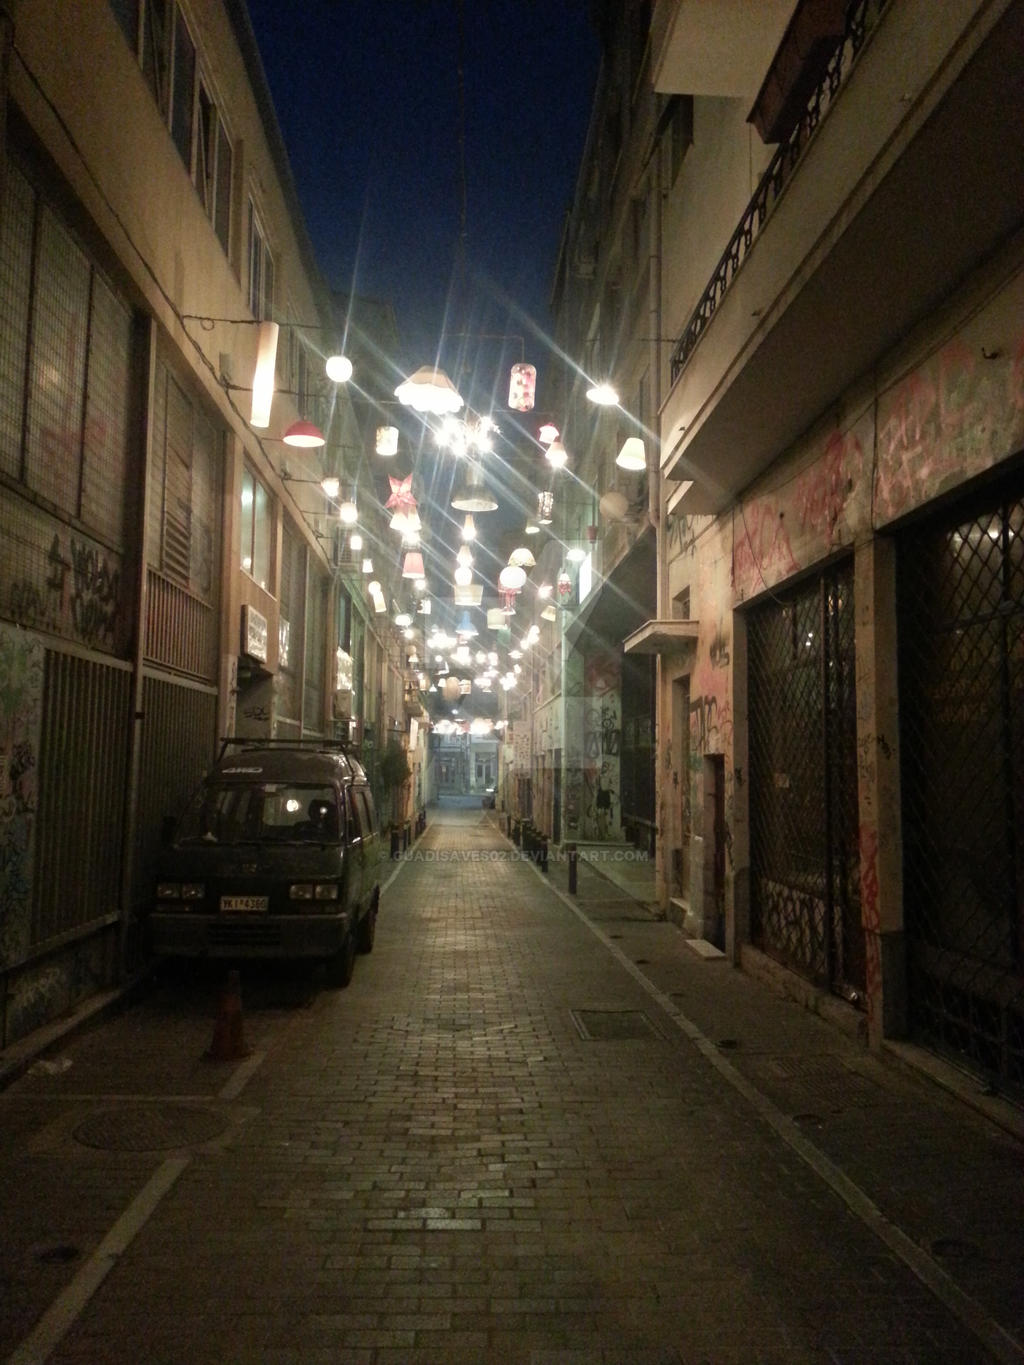 Summer 2014: Athens's alley by Guadisaves02